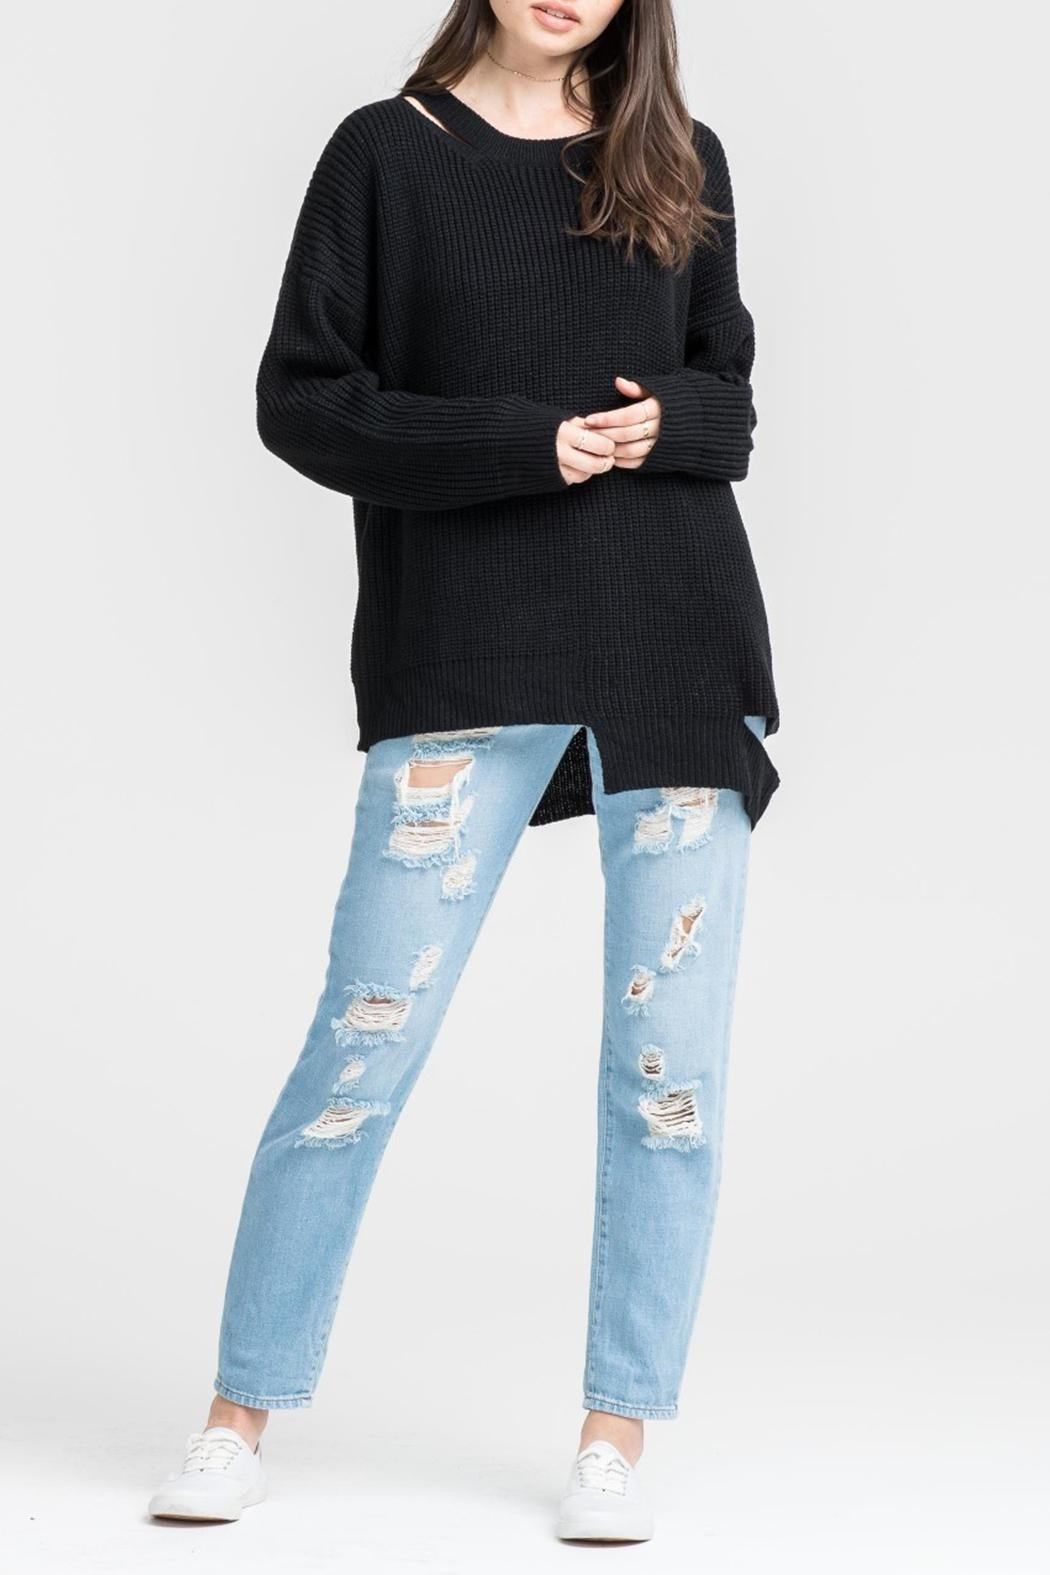 Lush Clothing  Black Slashed Sweater - Front Full Image